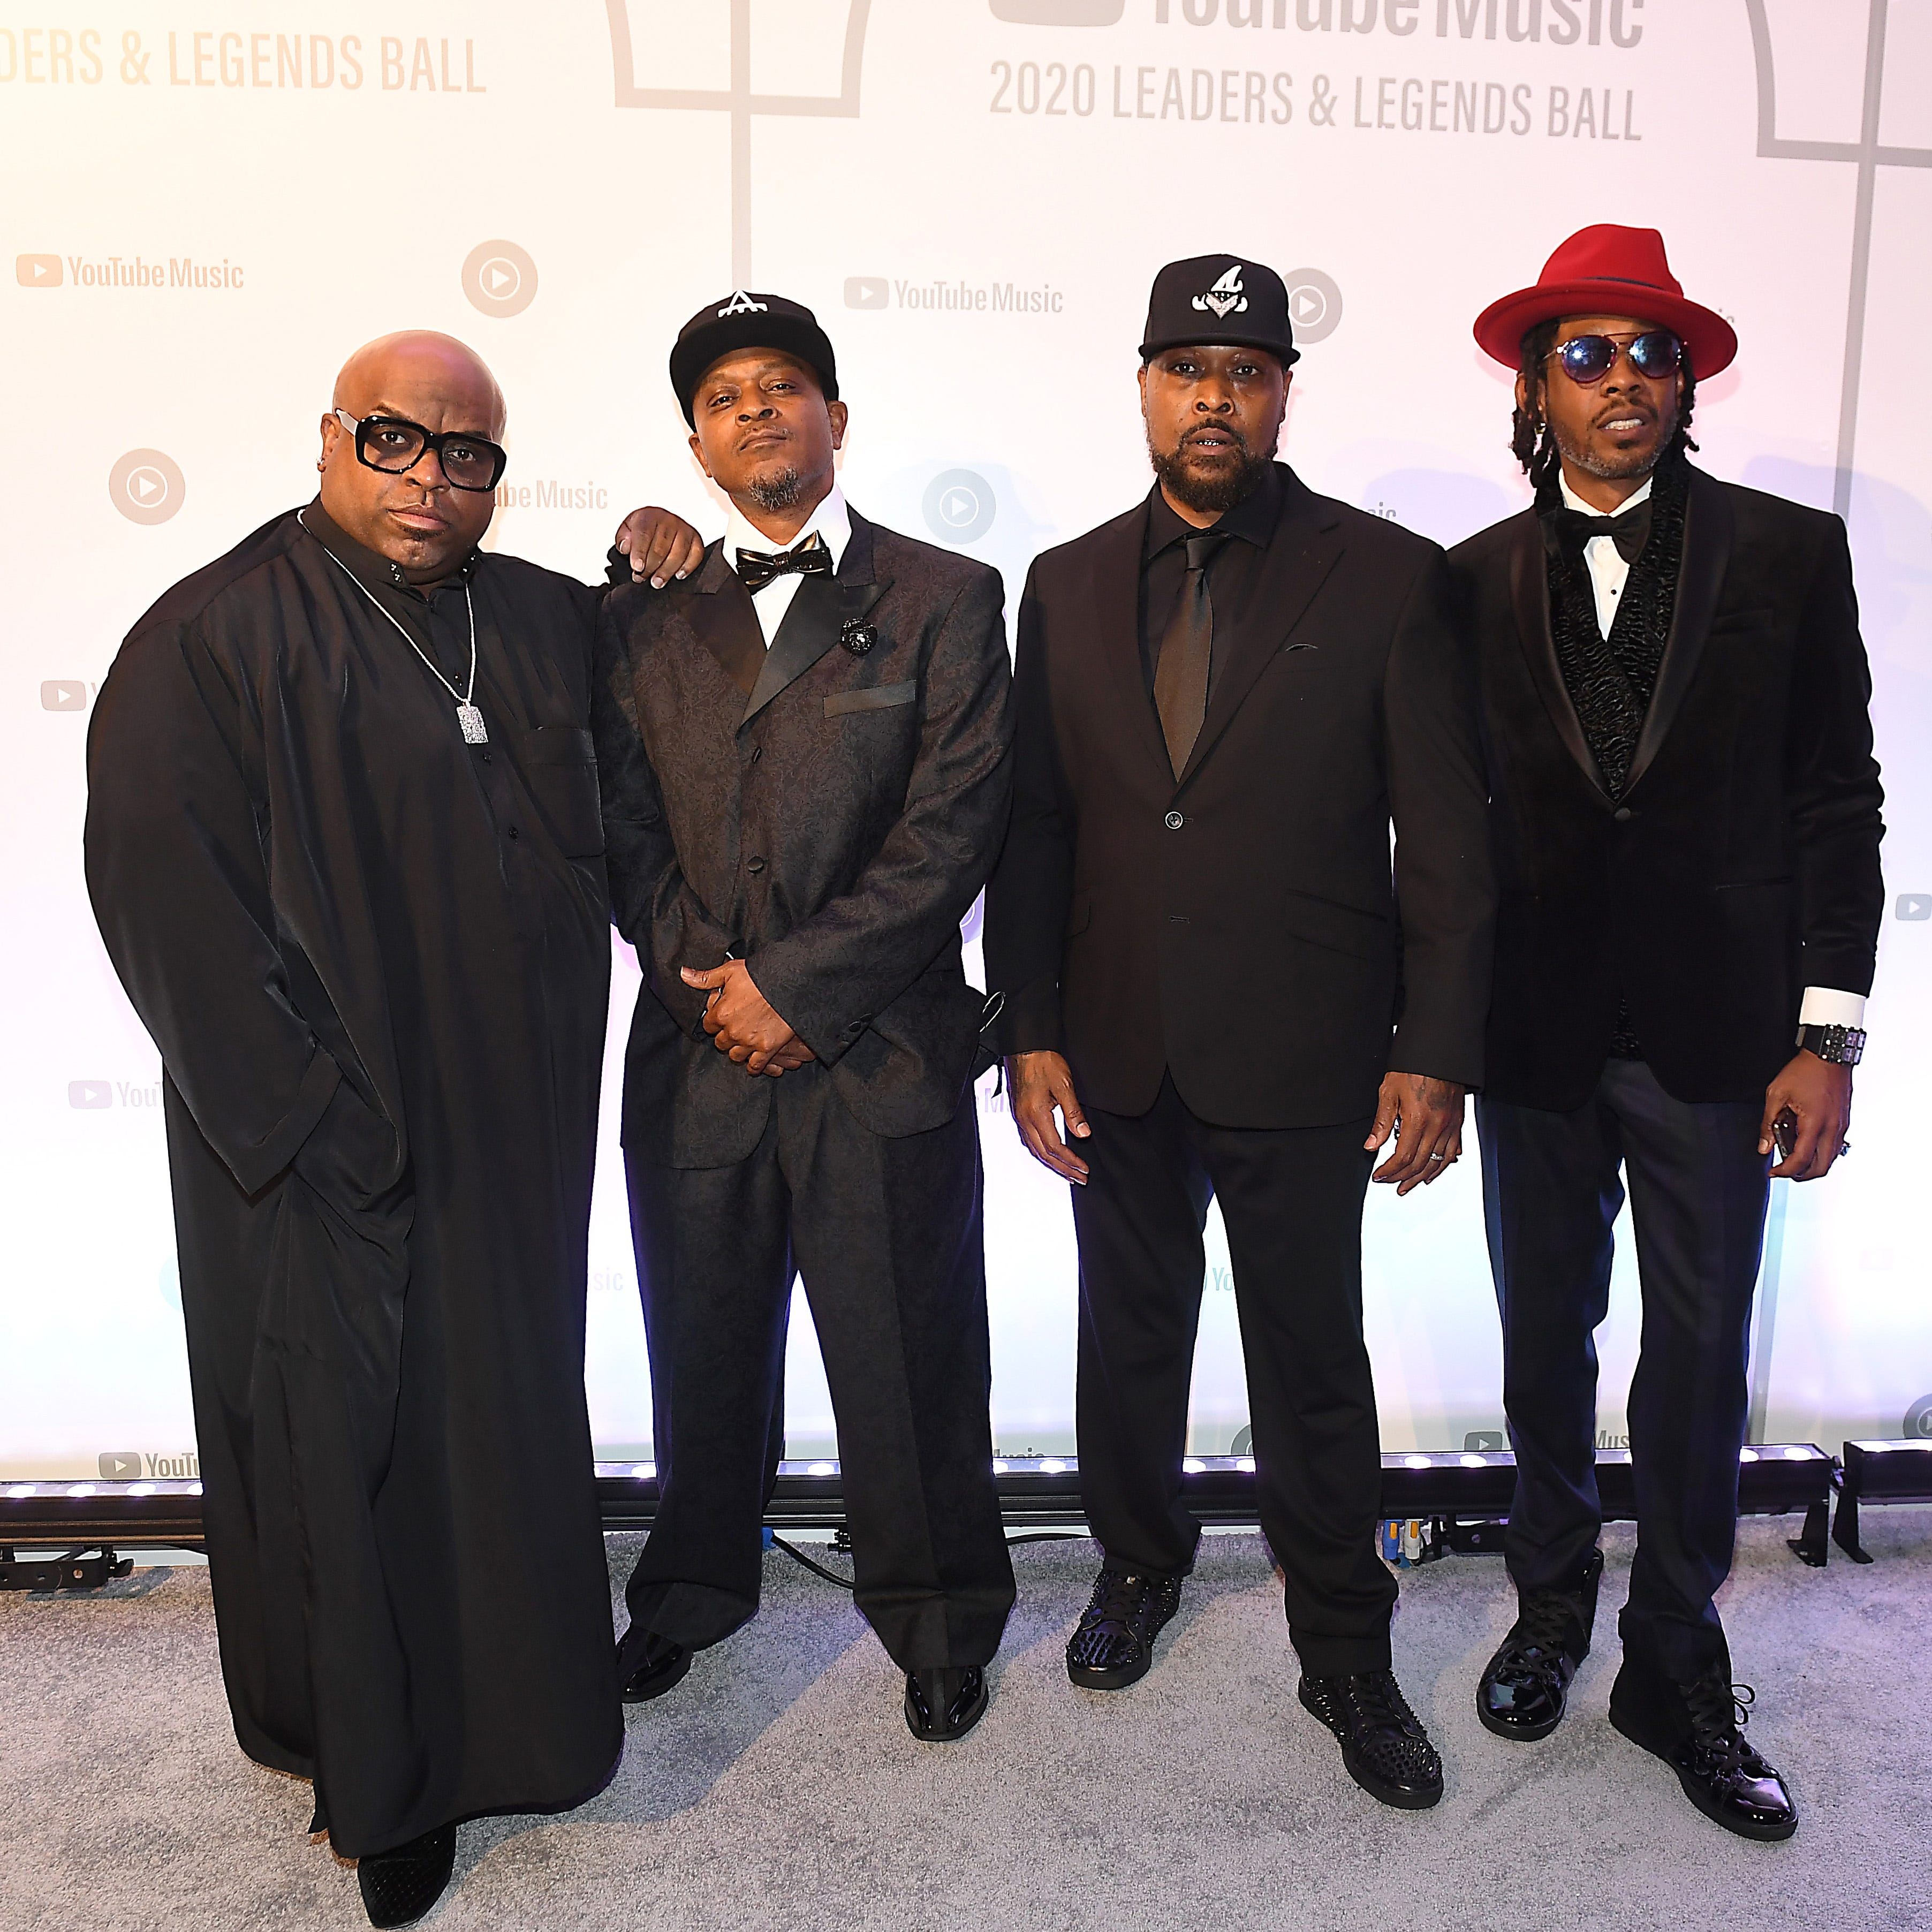 CeeLo Green, T-Mo, Khujo, and Big Gipp of Goodie Mob attend YouTube Music 2020 Leaders & Legends Ball at Atlanta History Center on January 15, 2020 in Atlanta, Georgia.